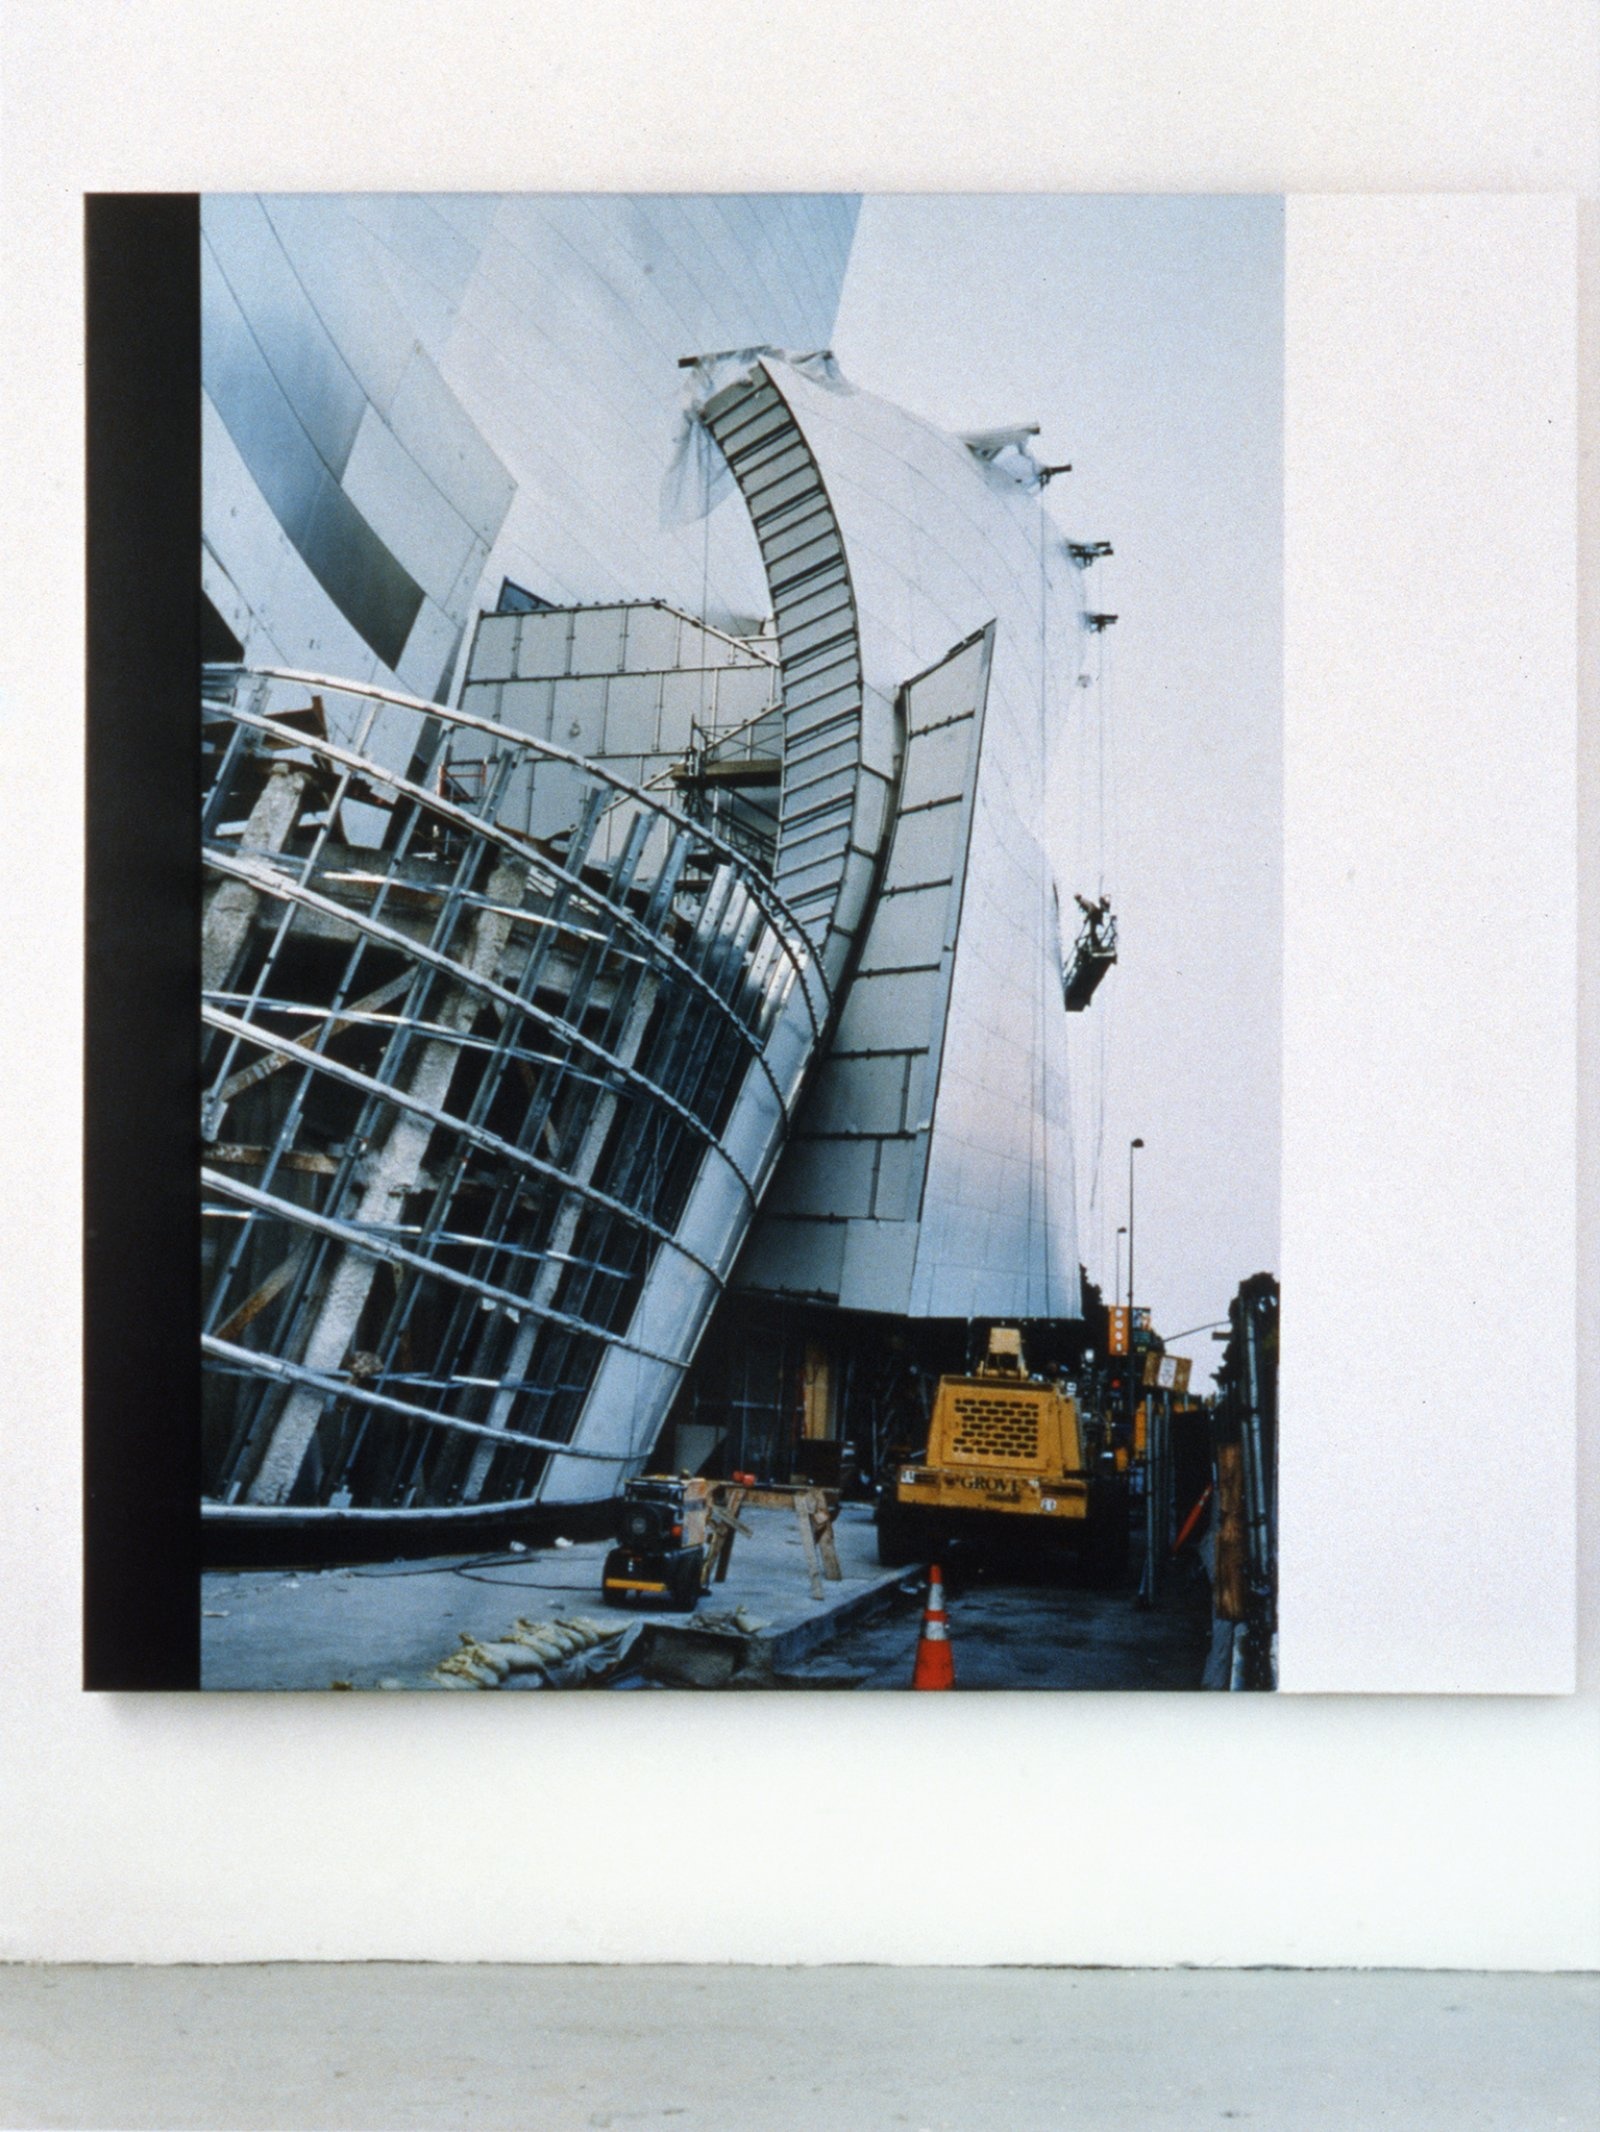 Ian Wallace,Construction Site LA III, 2003, photolaminate and acrylic on canvas,72 x 72 in. (183 x 183cm)